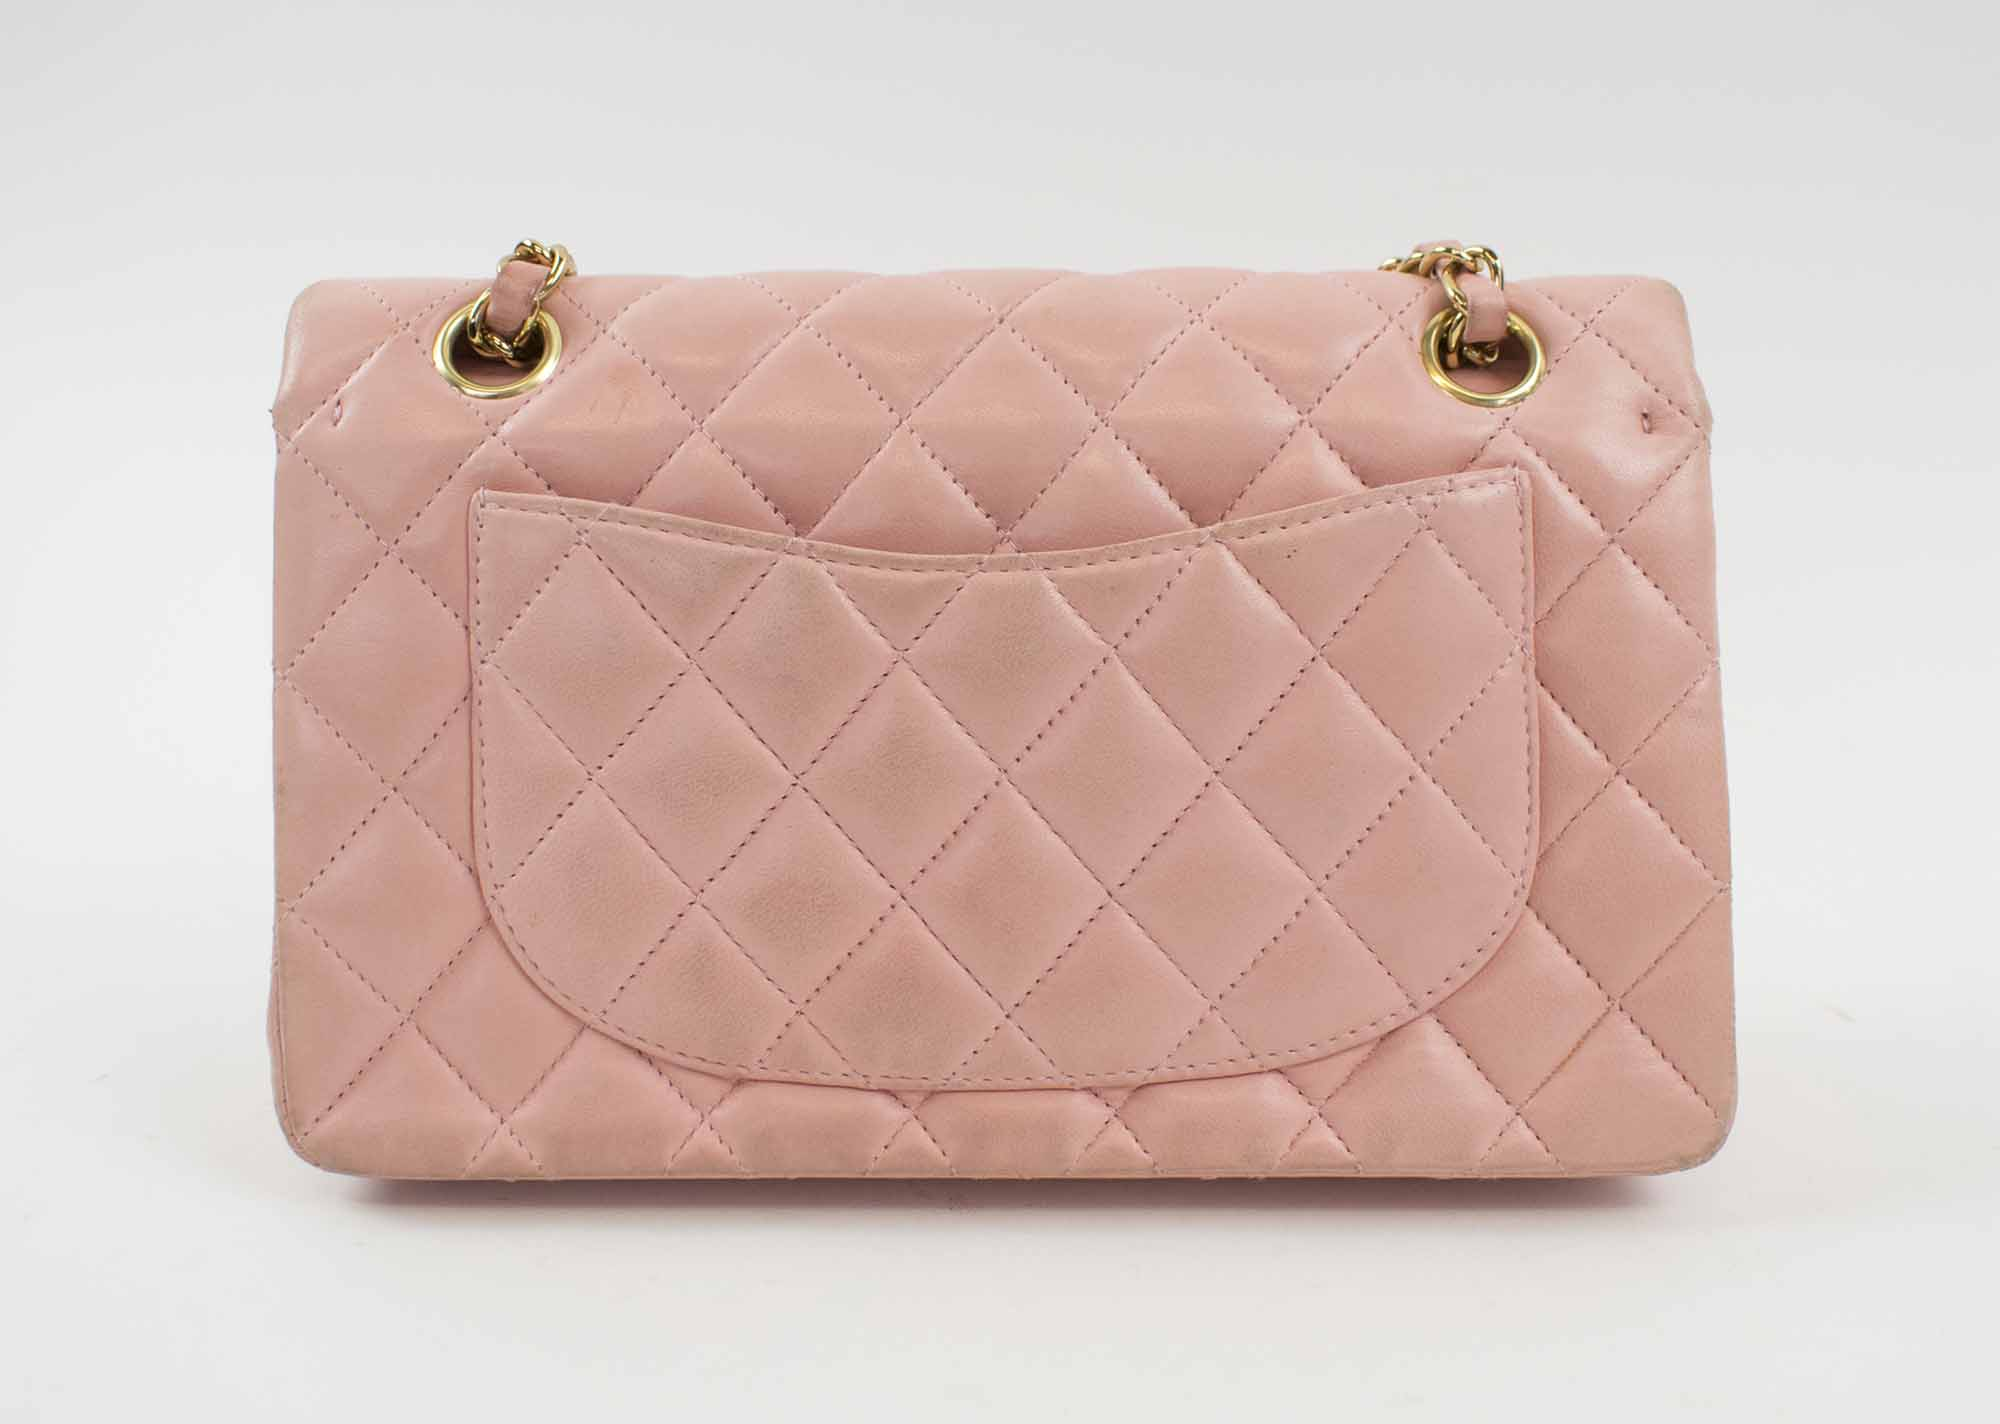 c67a382bd6700b CHANEL SMALL CLASSIC FLAP HANDBAG, with quilted pink leather with  interlocked CC lock, gold tone hardware and leather woven chain strap,  authenticity card ...